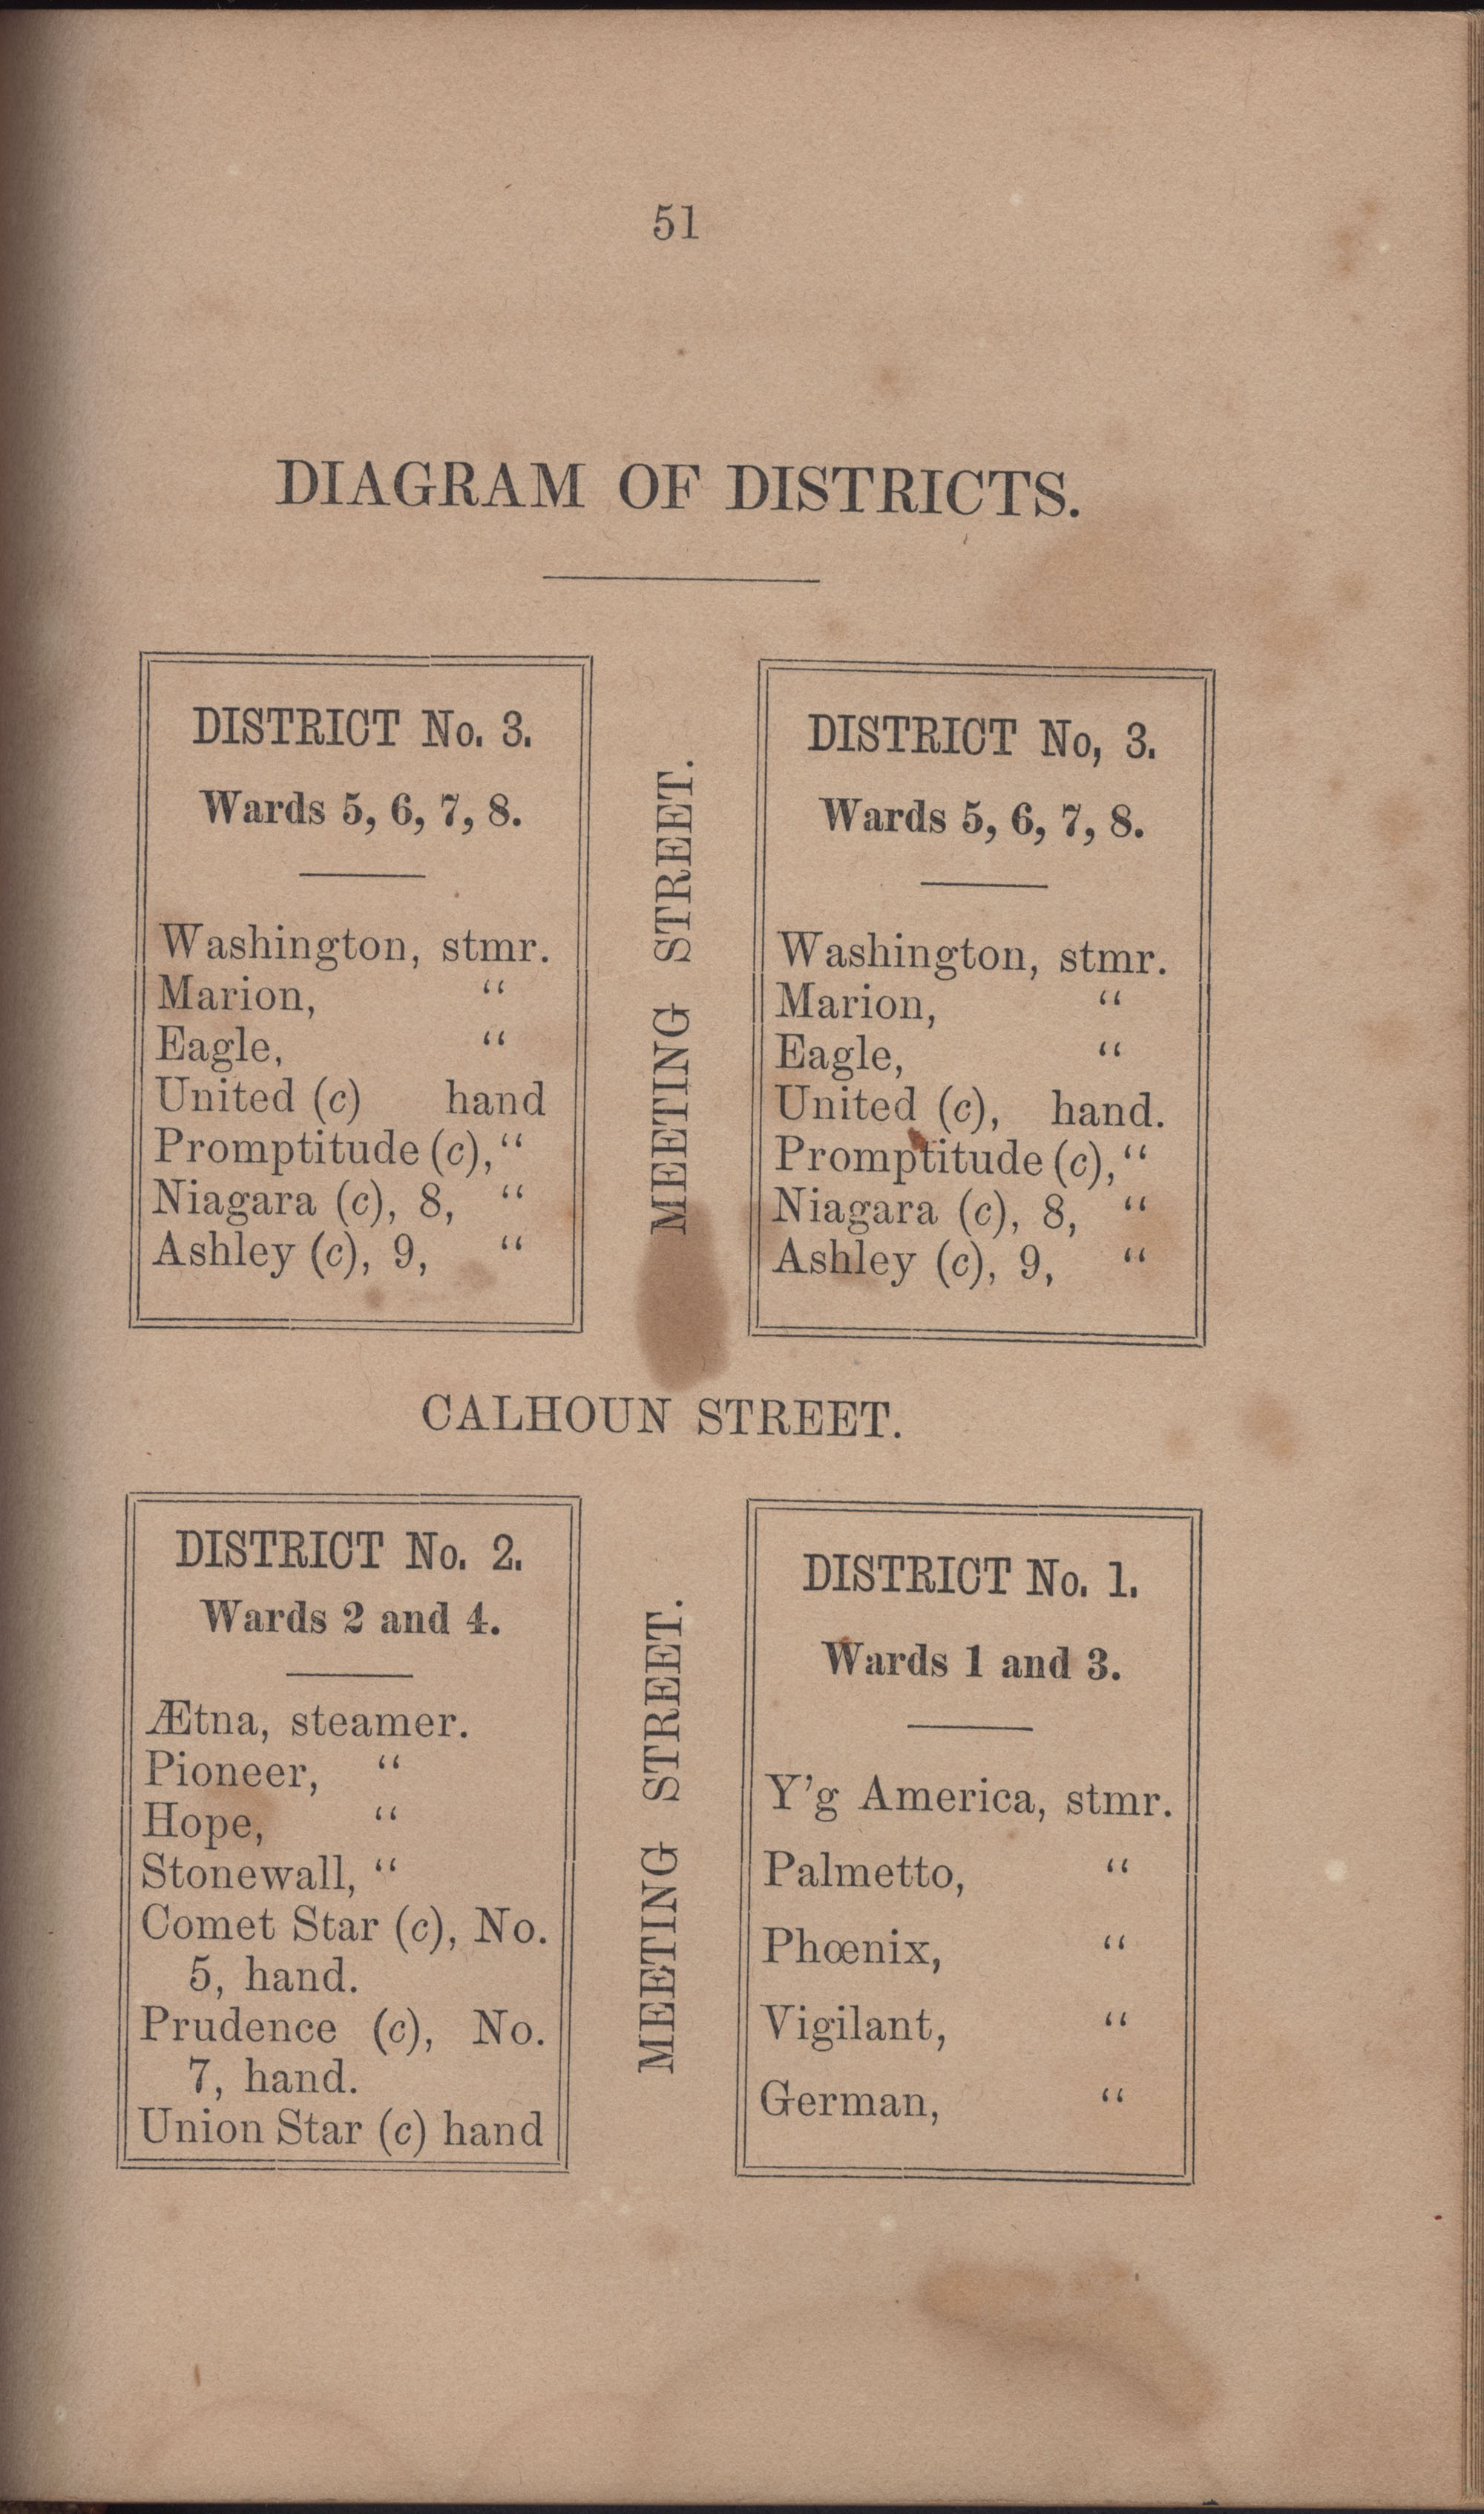 Annual Report of the Chief of the Fire Department of the City of Charleston, page 397